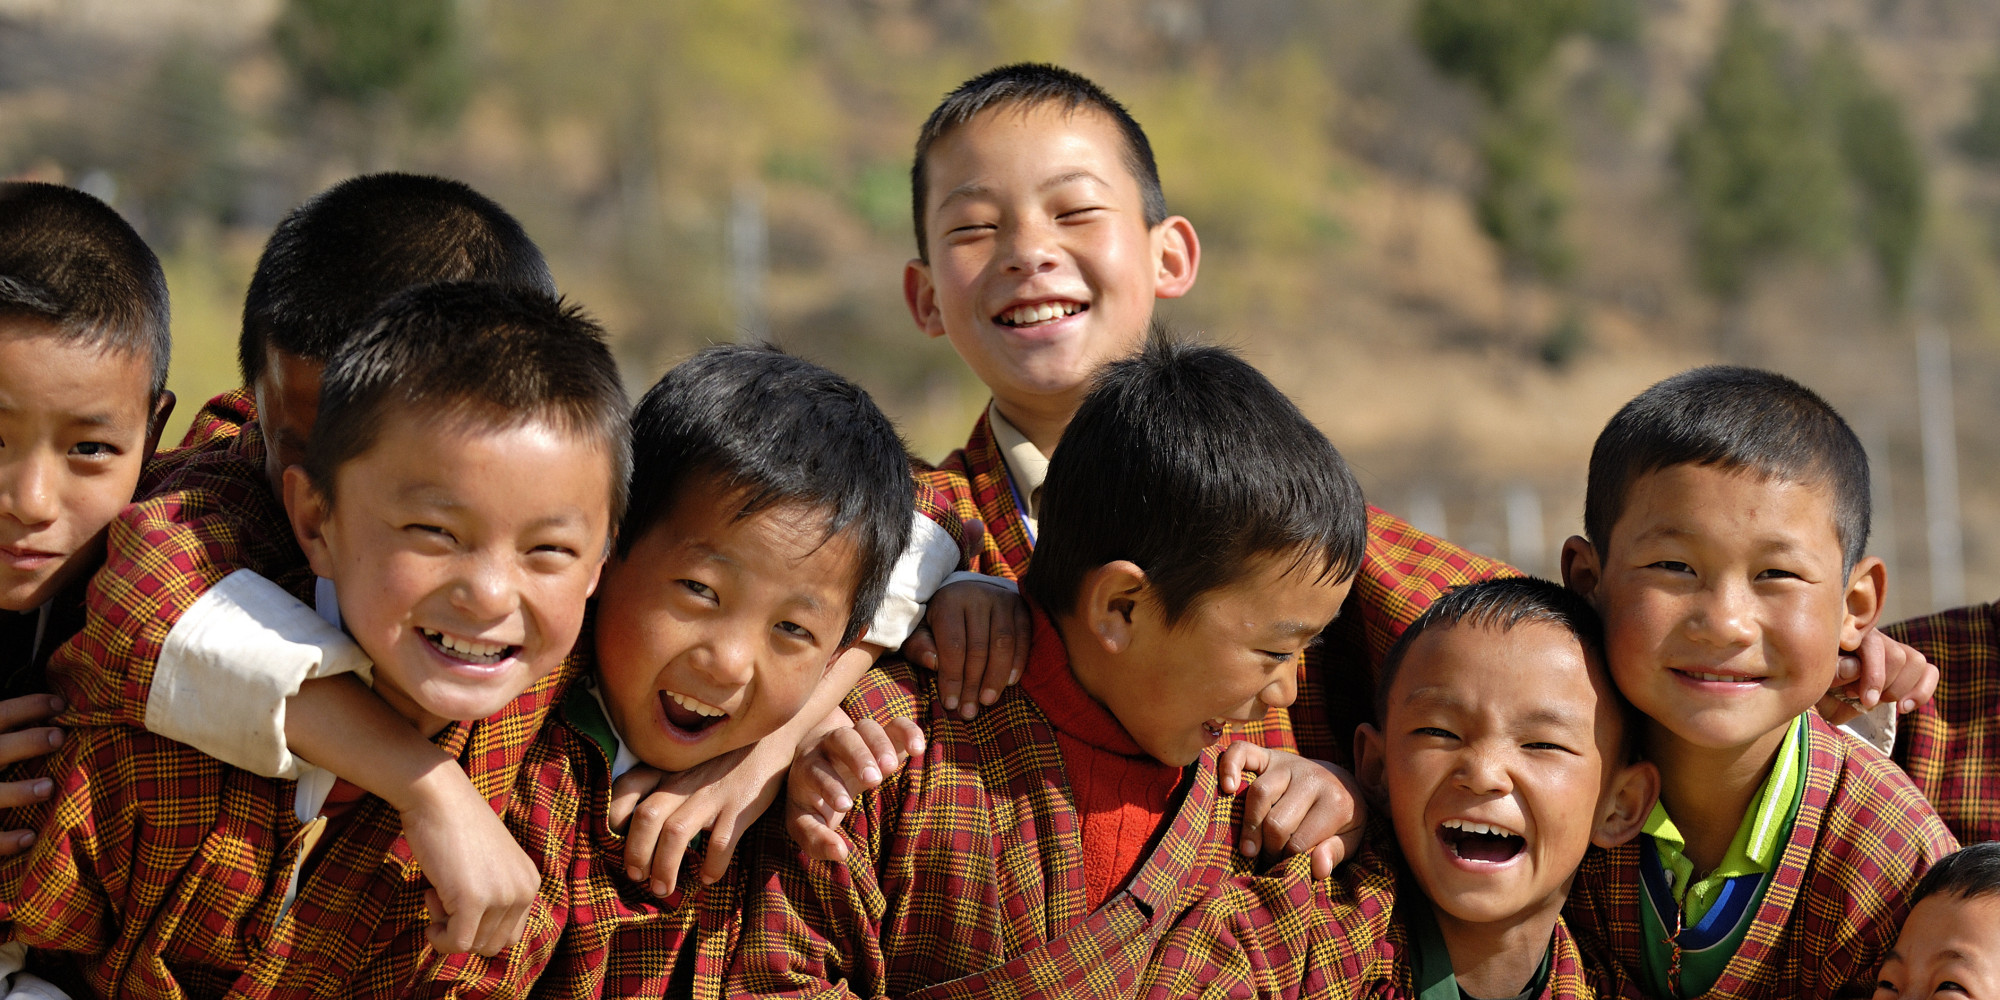 """bhutans concept of gross national happiness Gross national happiness (gnh) the fourth druk gyalpo, jigme sinye wangchuk at the age of 18, coined the term """"gross national happiness"""" (gnh) in 1972 he put through a proposition that gross national product (gnp) was an insufficient measurement of the success of a country."""